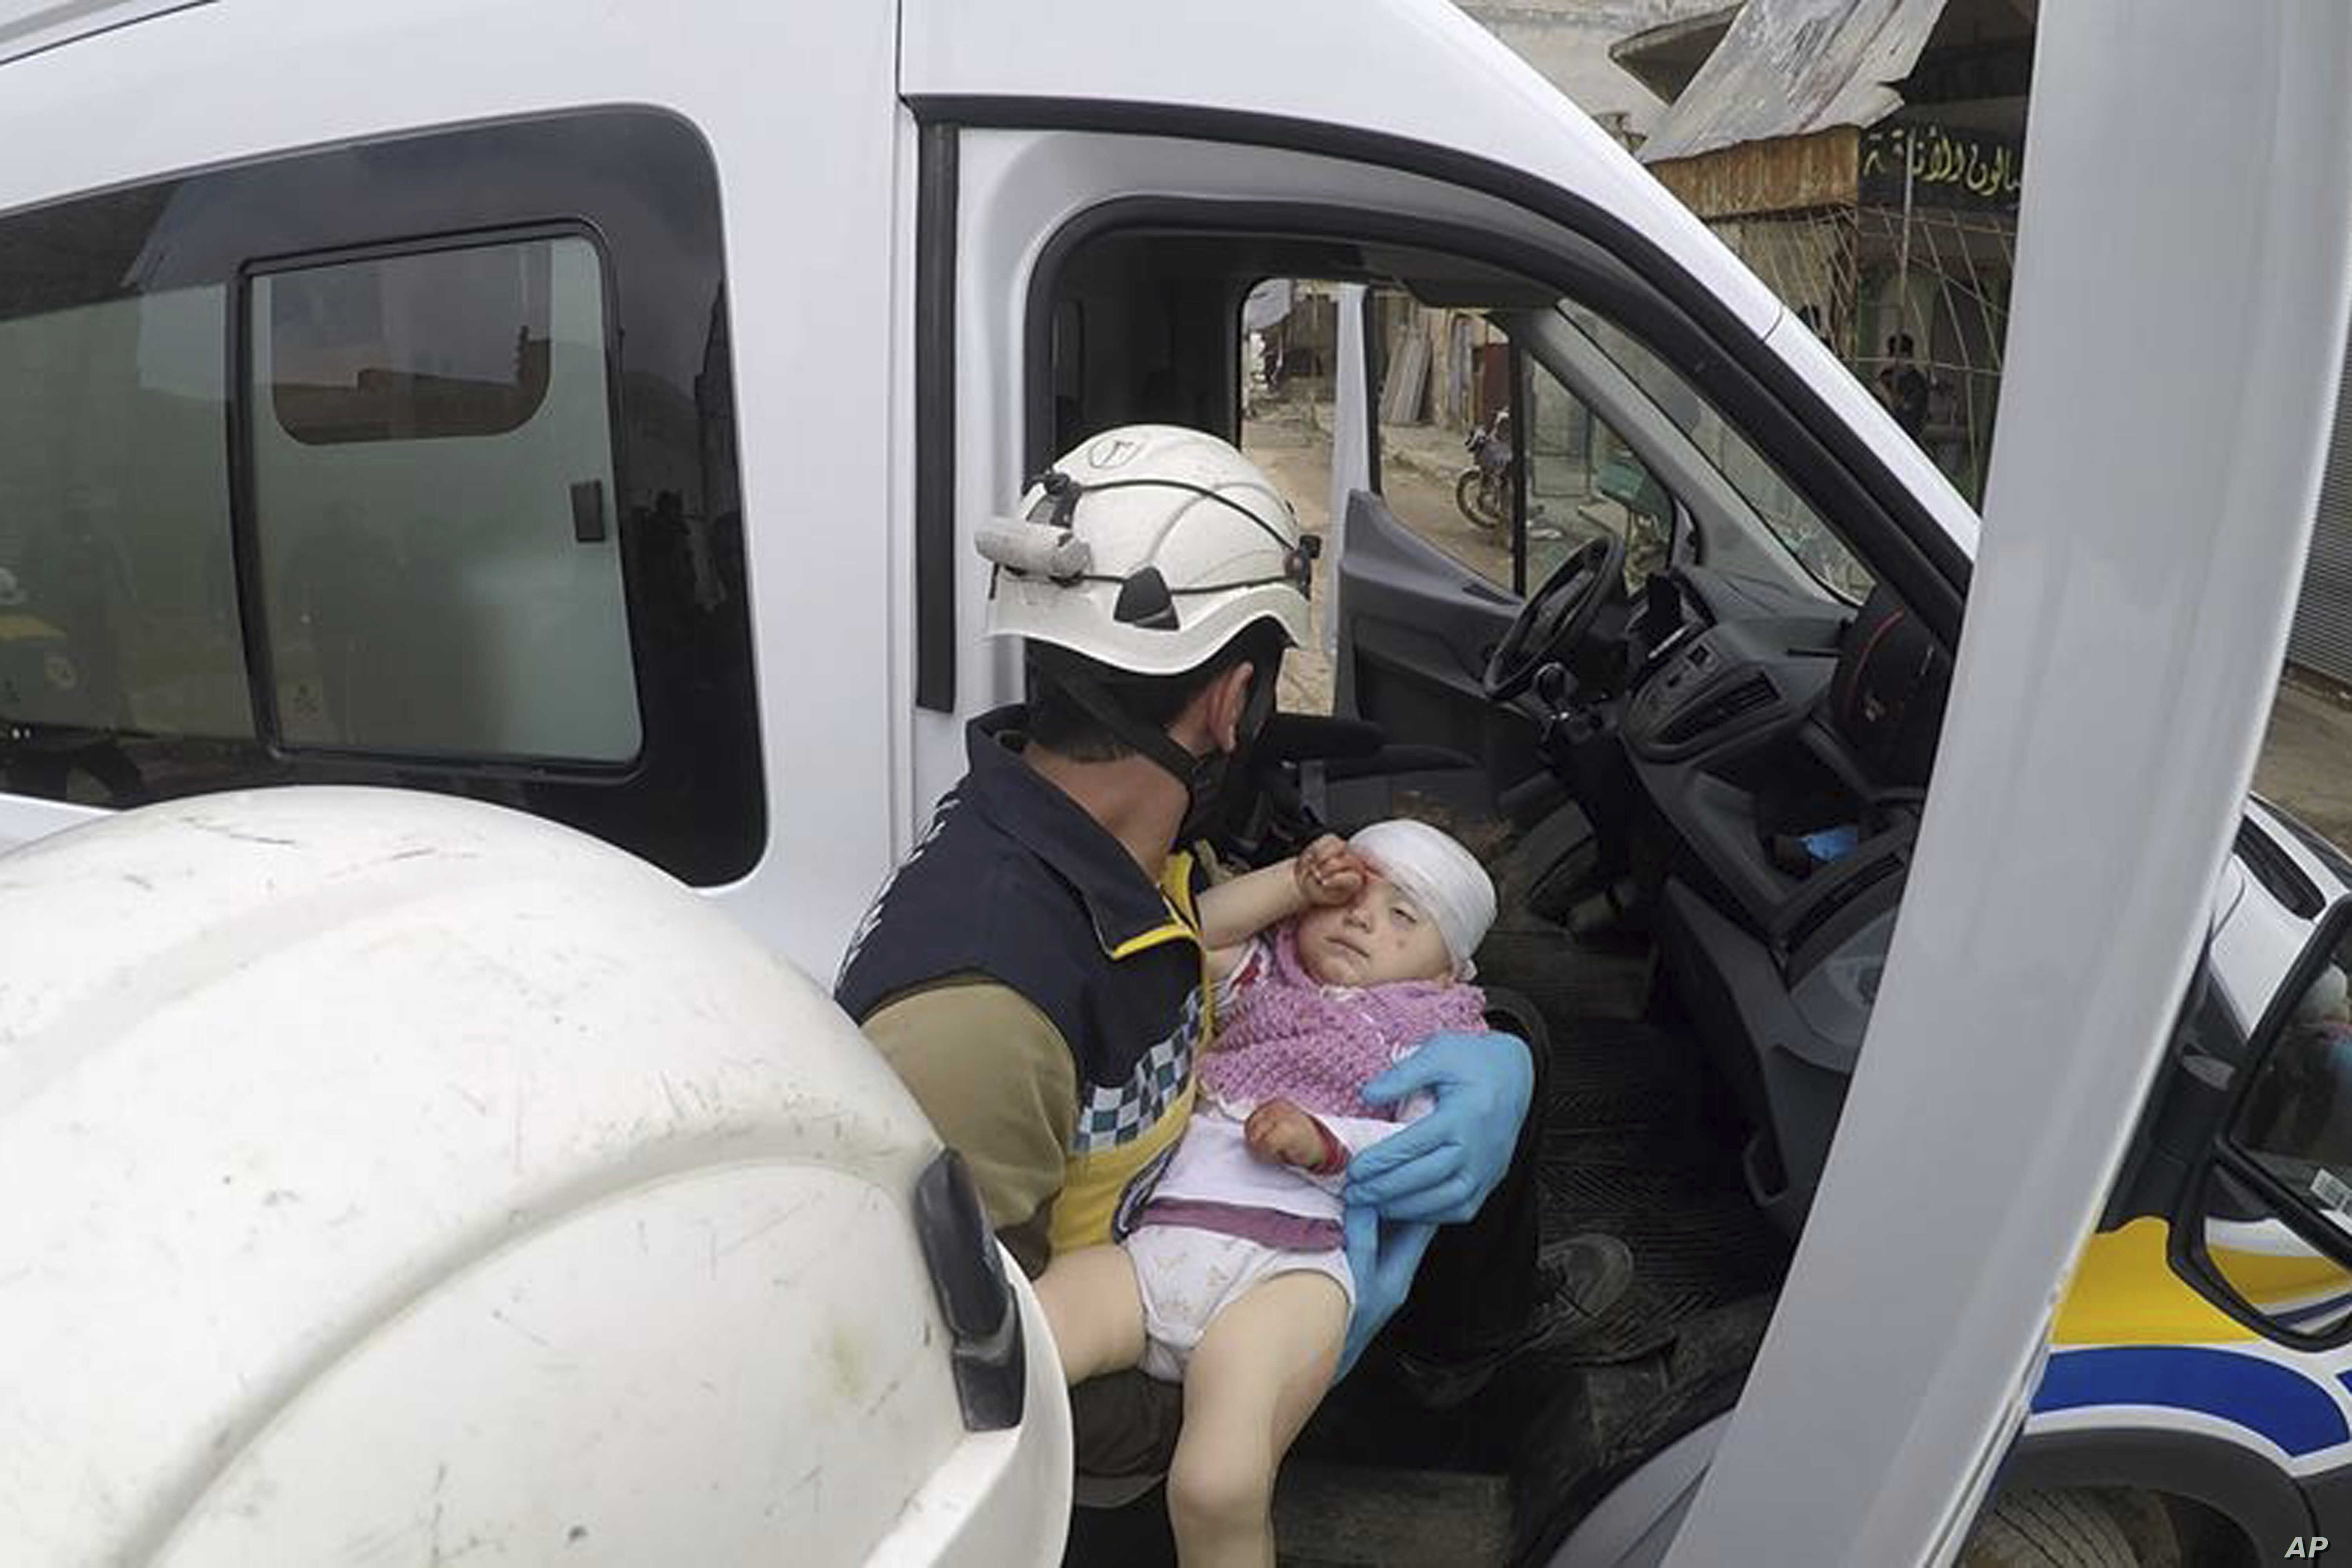 This photo provided by the Syrian Defense White Helmets shows a civil defense worker carrying a child after shelling hit a street in the town of Nairab, in the eastern province of Idlib, Syria,  Apr. 7, 2019.